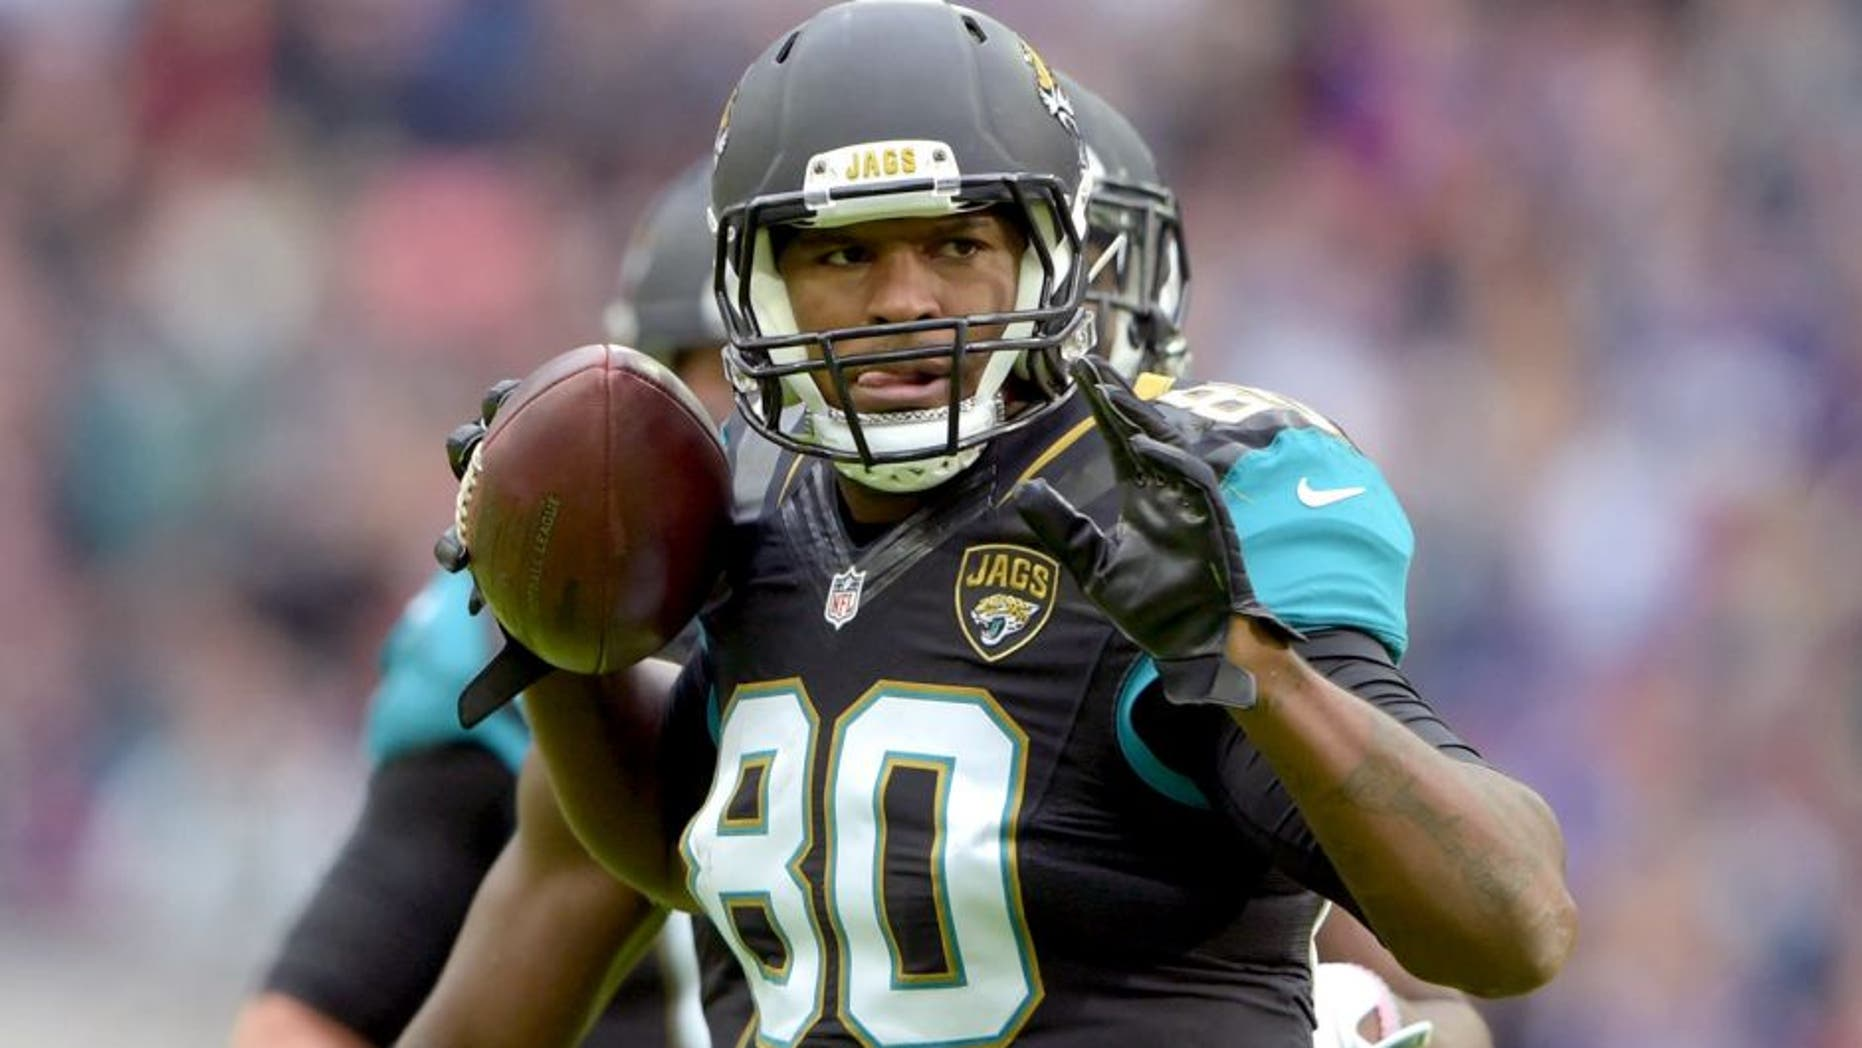 Oct 25, 2015; London, United Kingdom; Jacksonville Jaguars tight end Julius Thomas (80) celebrates after a catch against the Buffalo Bills during NFL International Series game at Wembley Stadium. Mandatory Credit: Kirby Lee-USA TODAY Sports